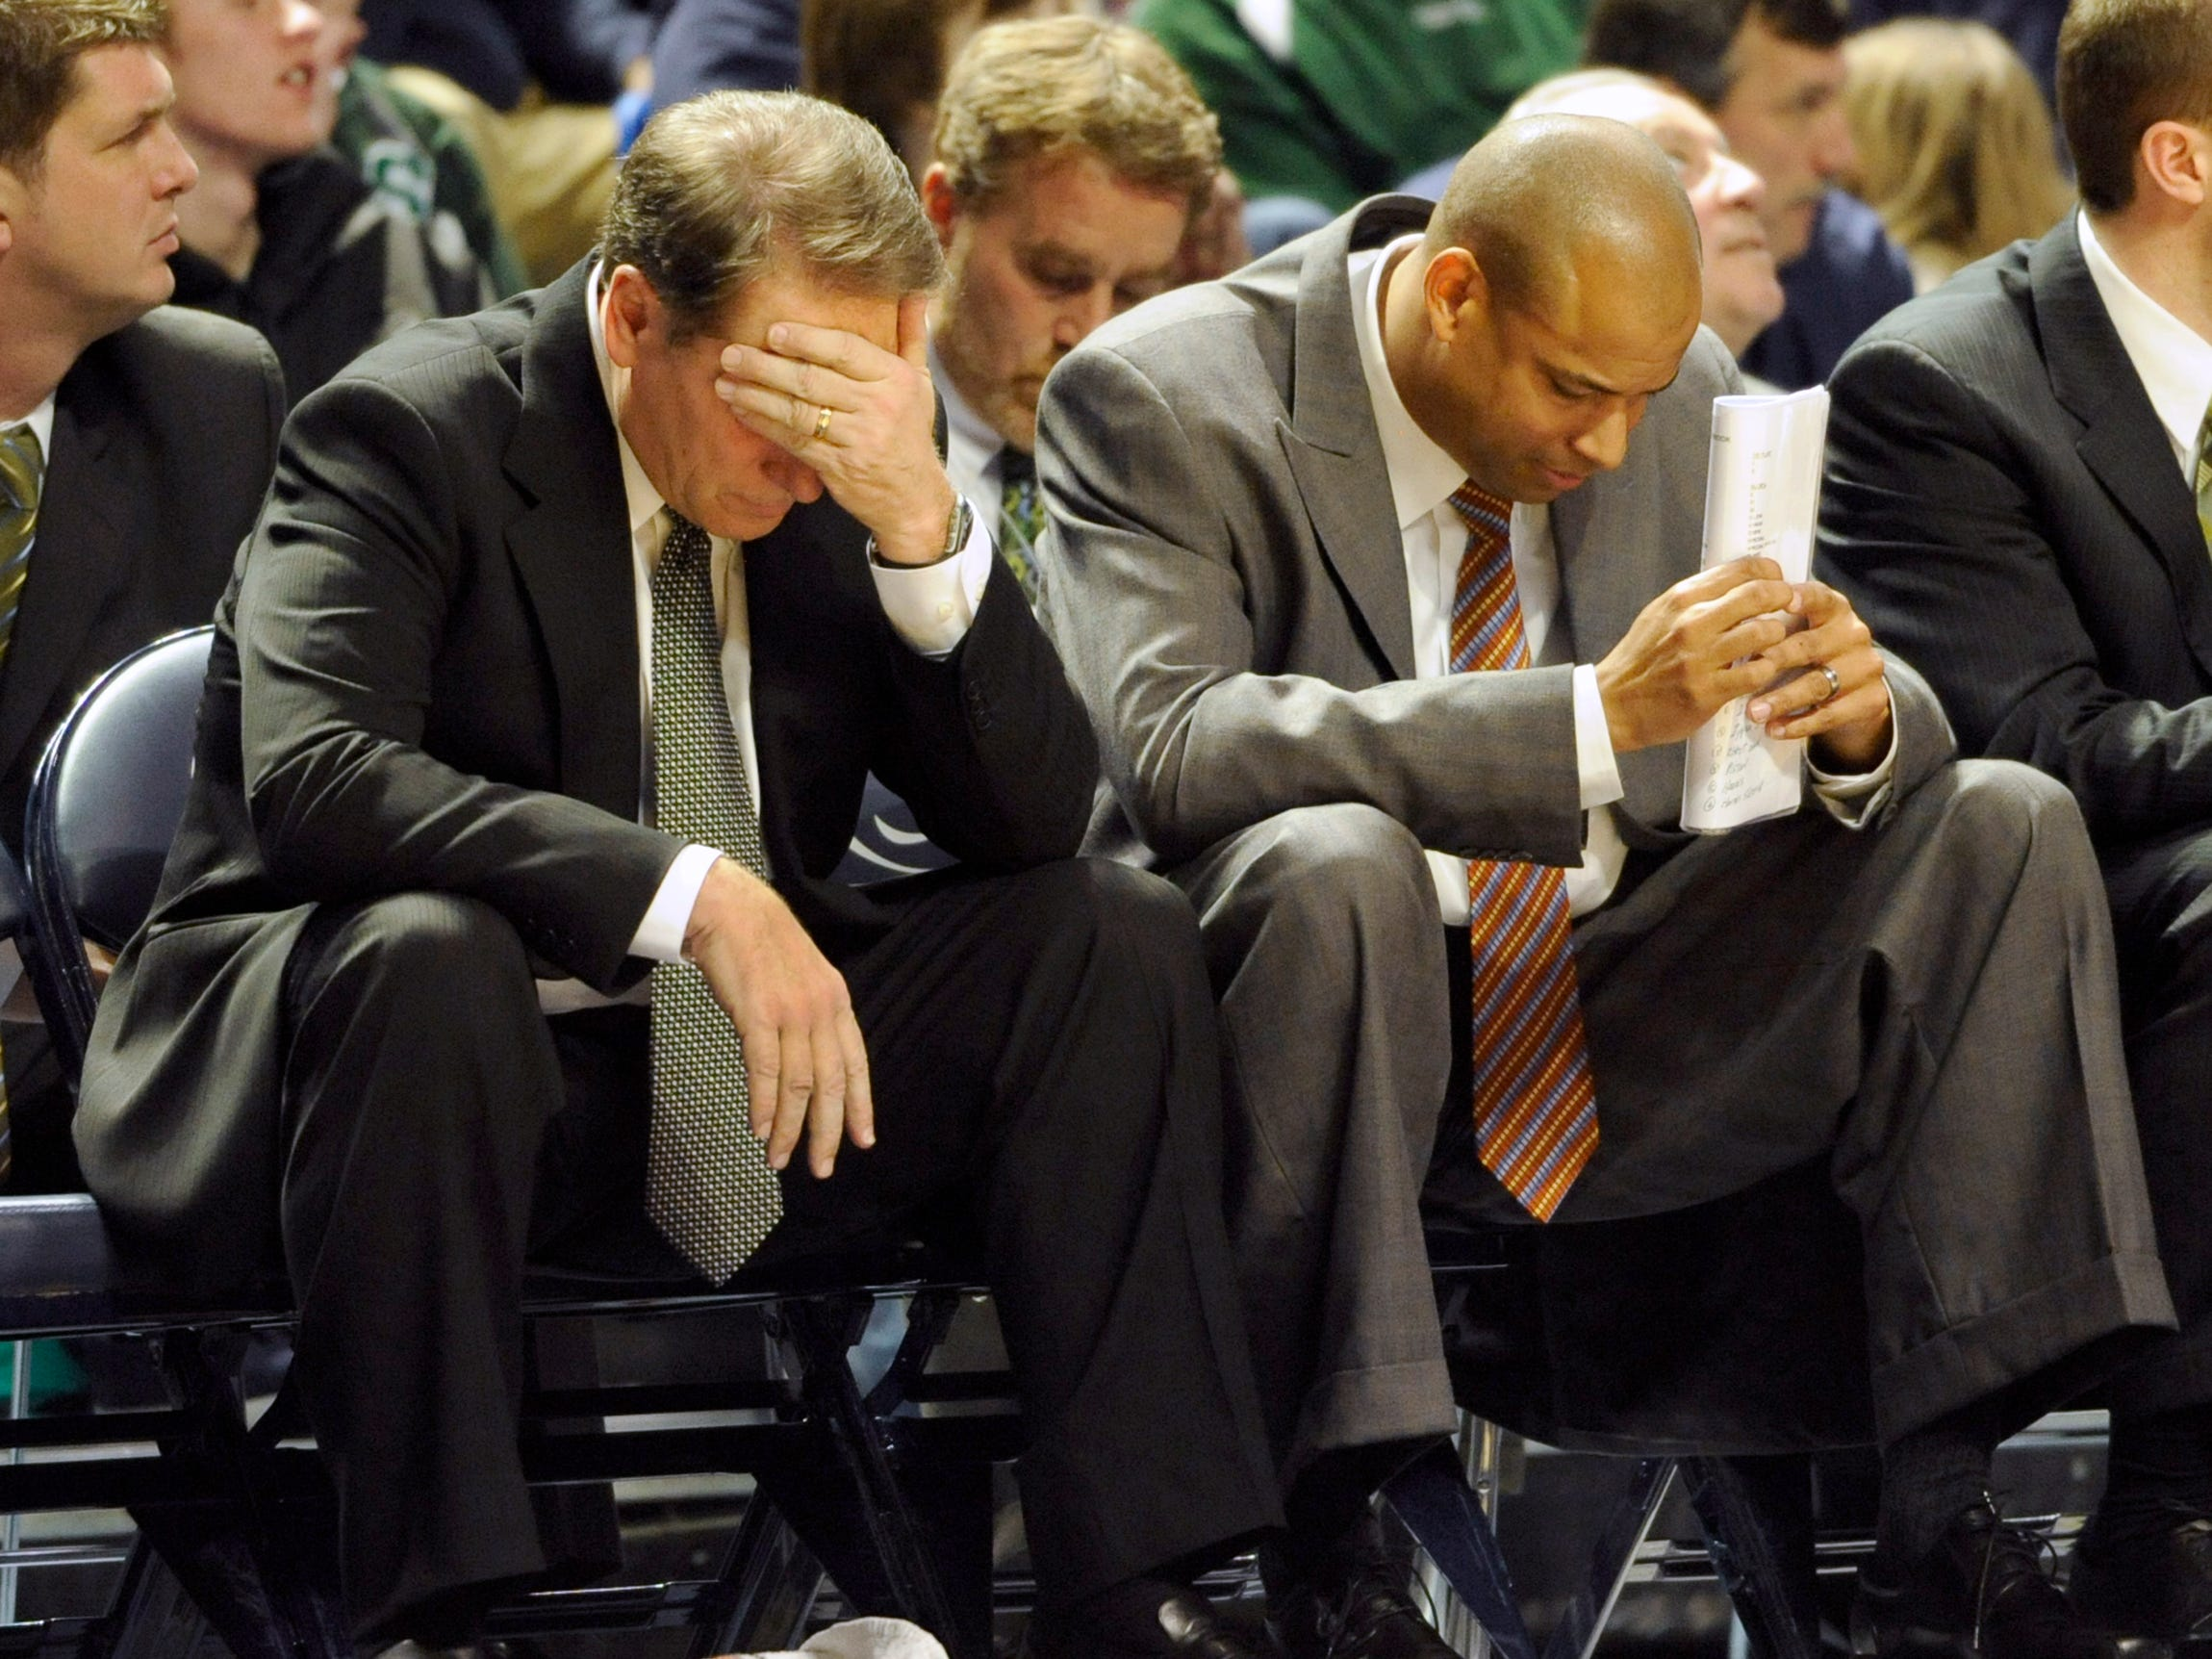 Michigan State head coach Tom Izzo, left, and associate head coach Mark Montgomery react in the second half of an NCAA college basketball game in State College, Pa., Saturday Jan. 8, 2011. Penn State defeated No. 18 Michigan State 66-62.